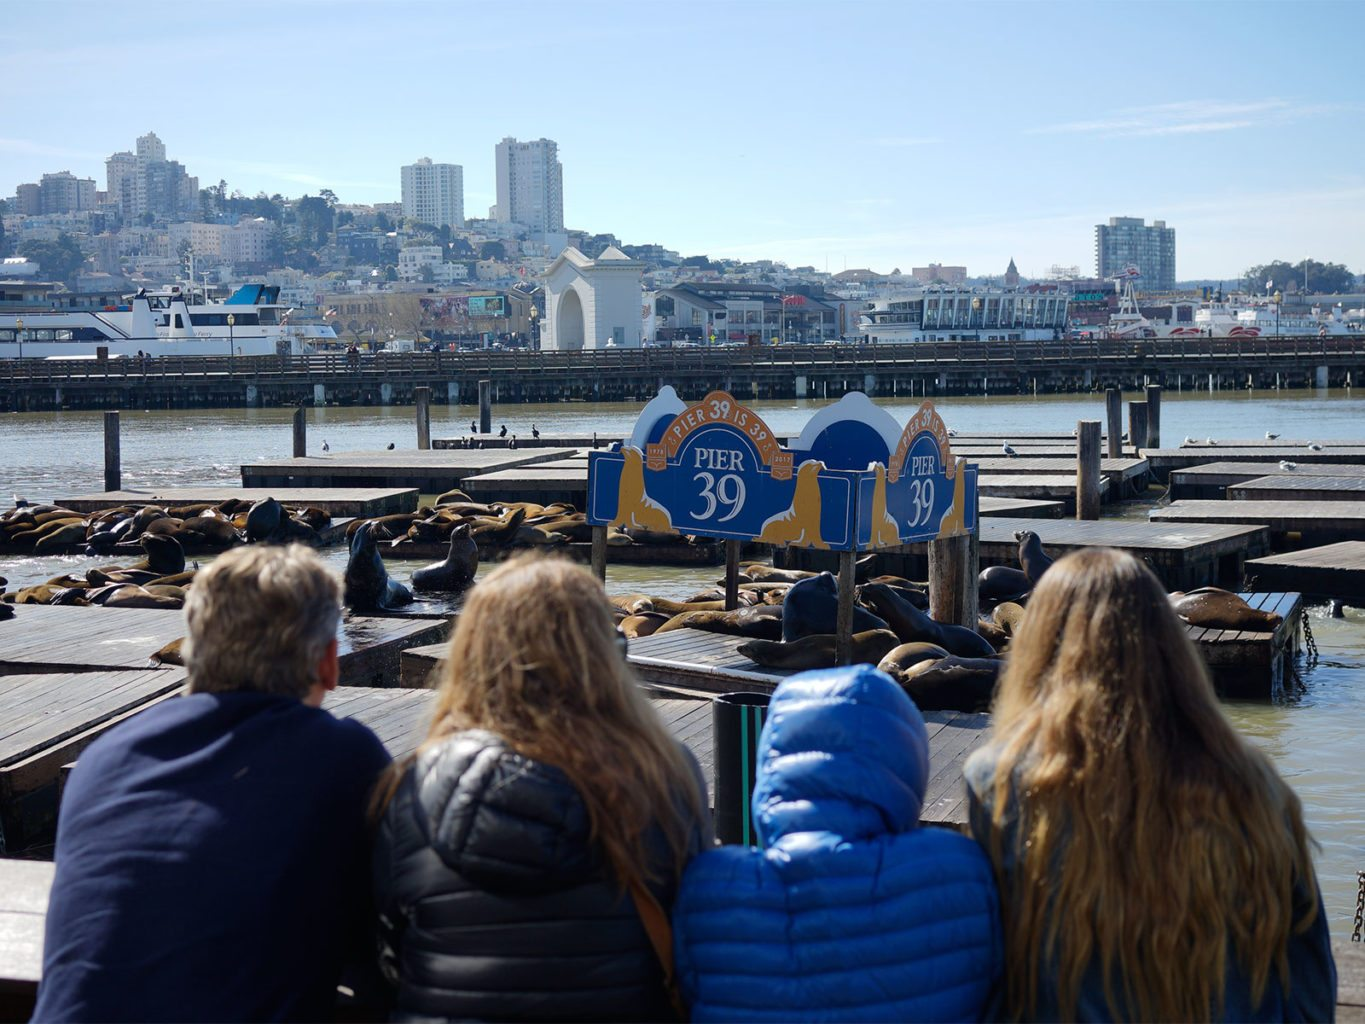 A family watches dozens of sunbathing sea lions in February at San Francisco's Pier 39. The beloved destination on The Embarcadero turns 39 this year. (James Chan/Special to S.F. Examiner)